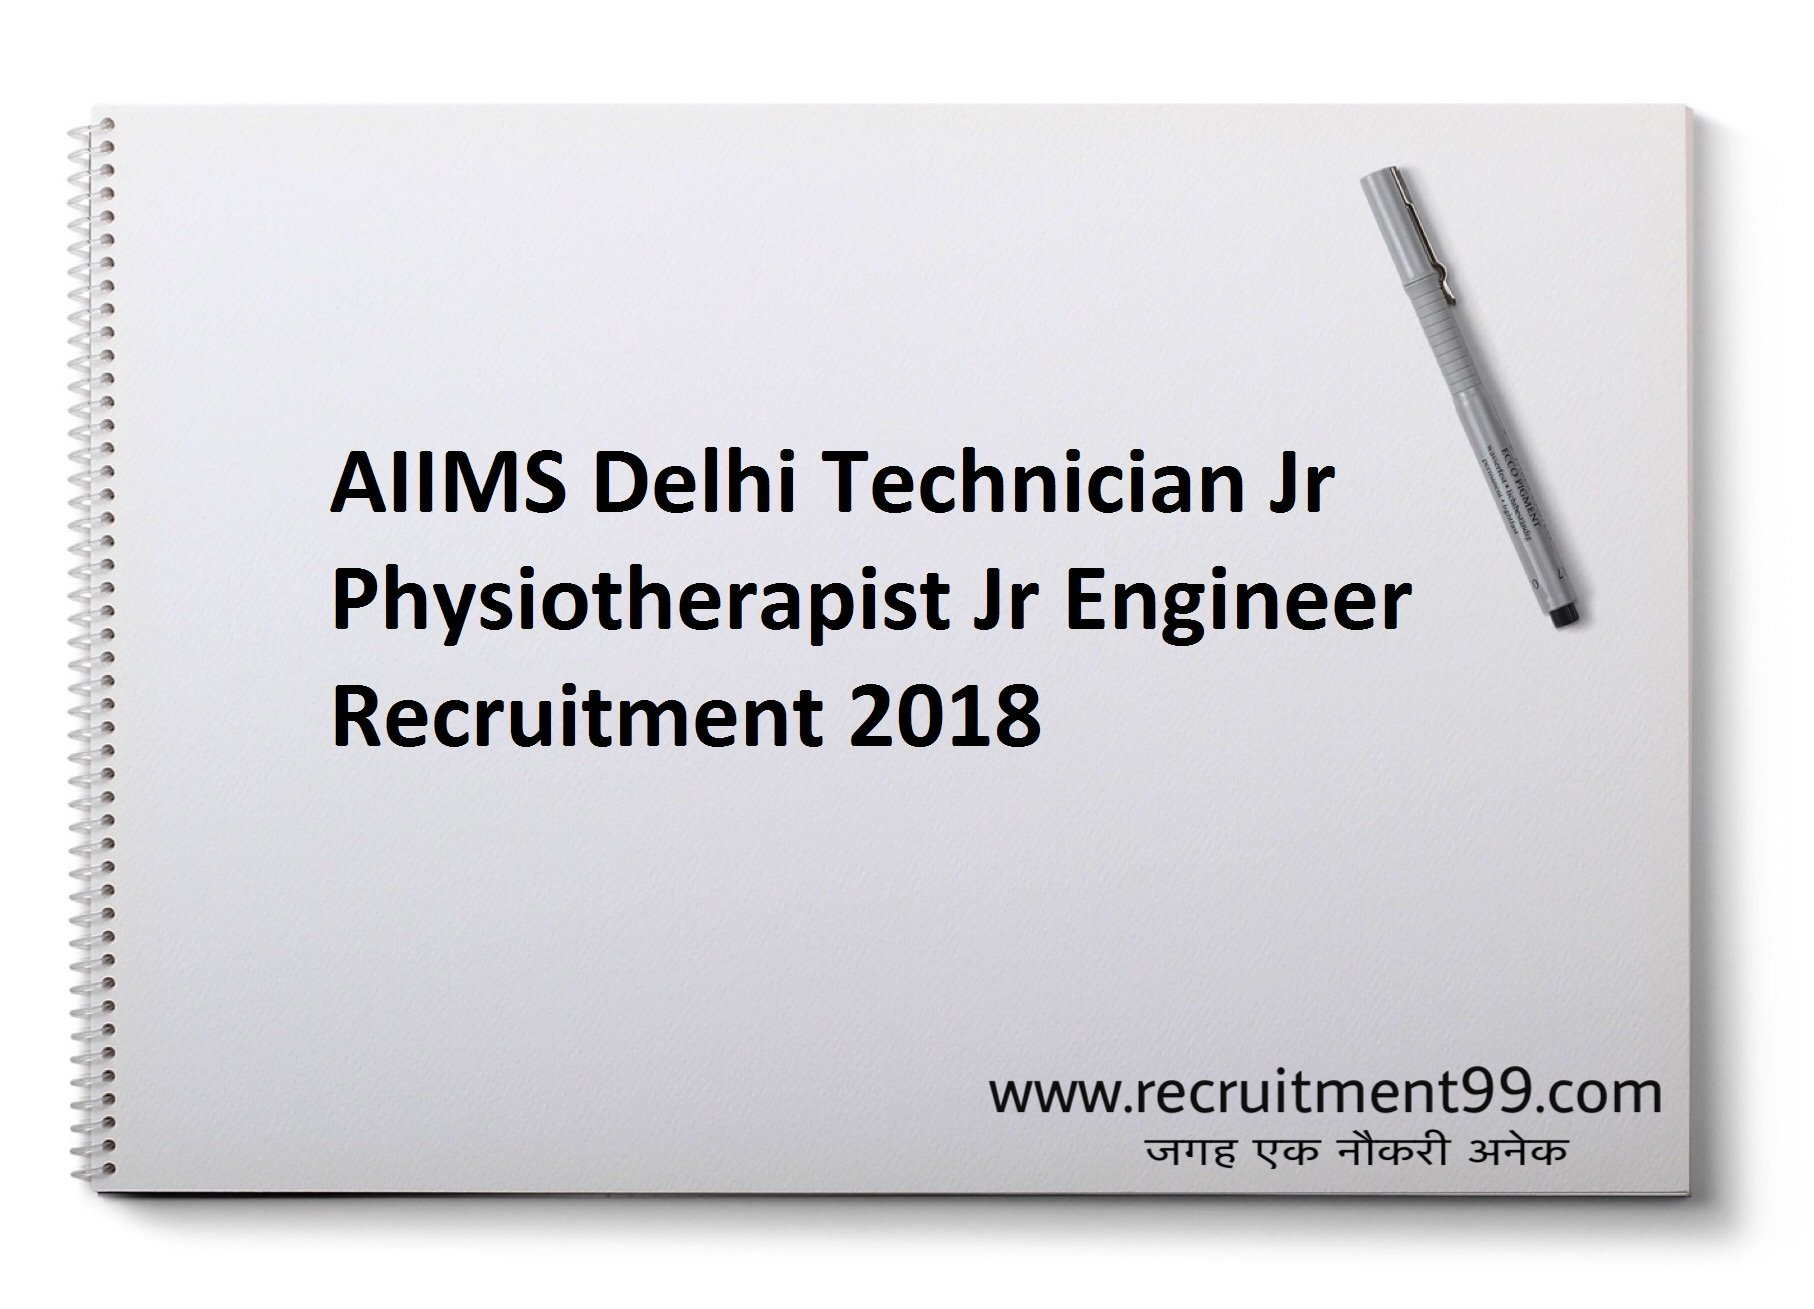 AIIMS Delhi Technician Jr Physiotherapist Jr Engineer Recruitment Admit Card Result 2018